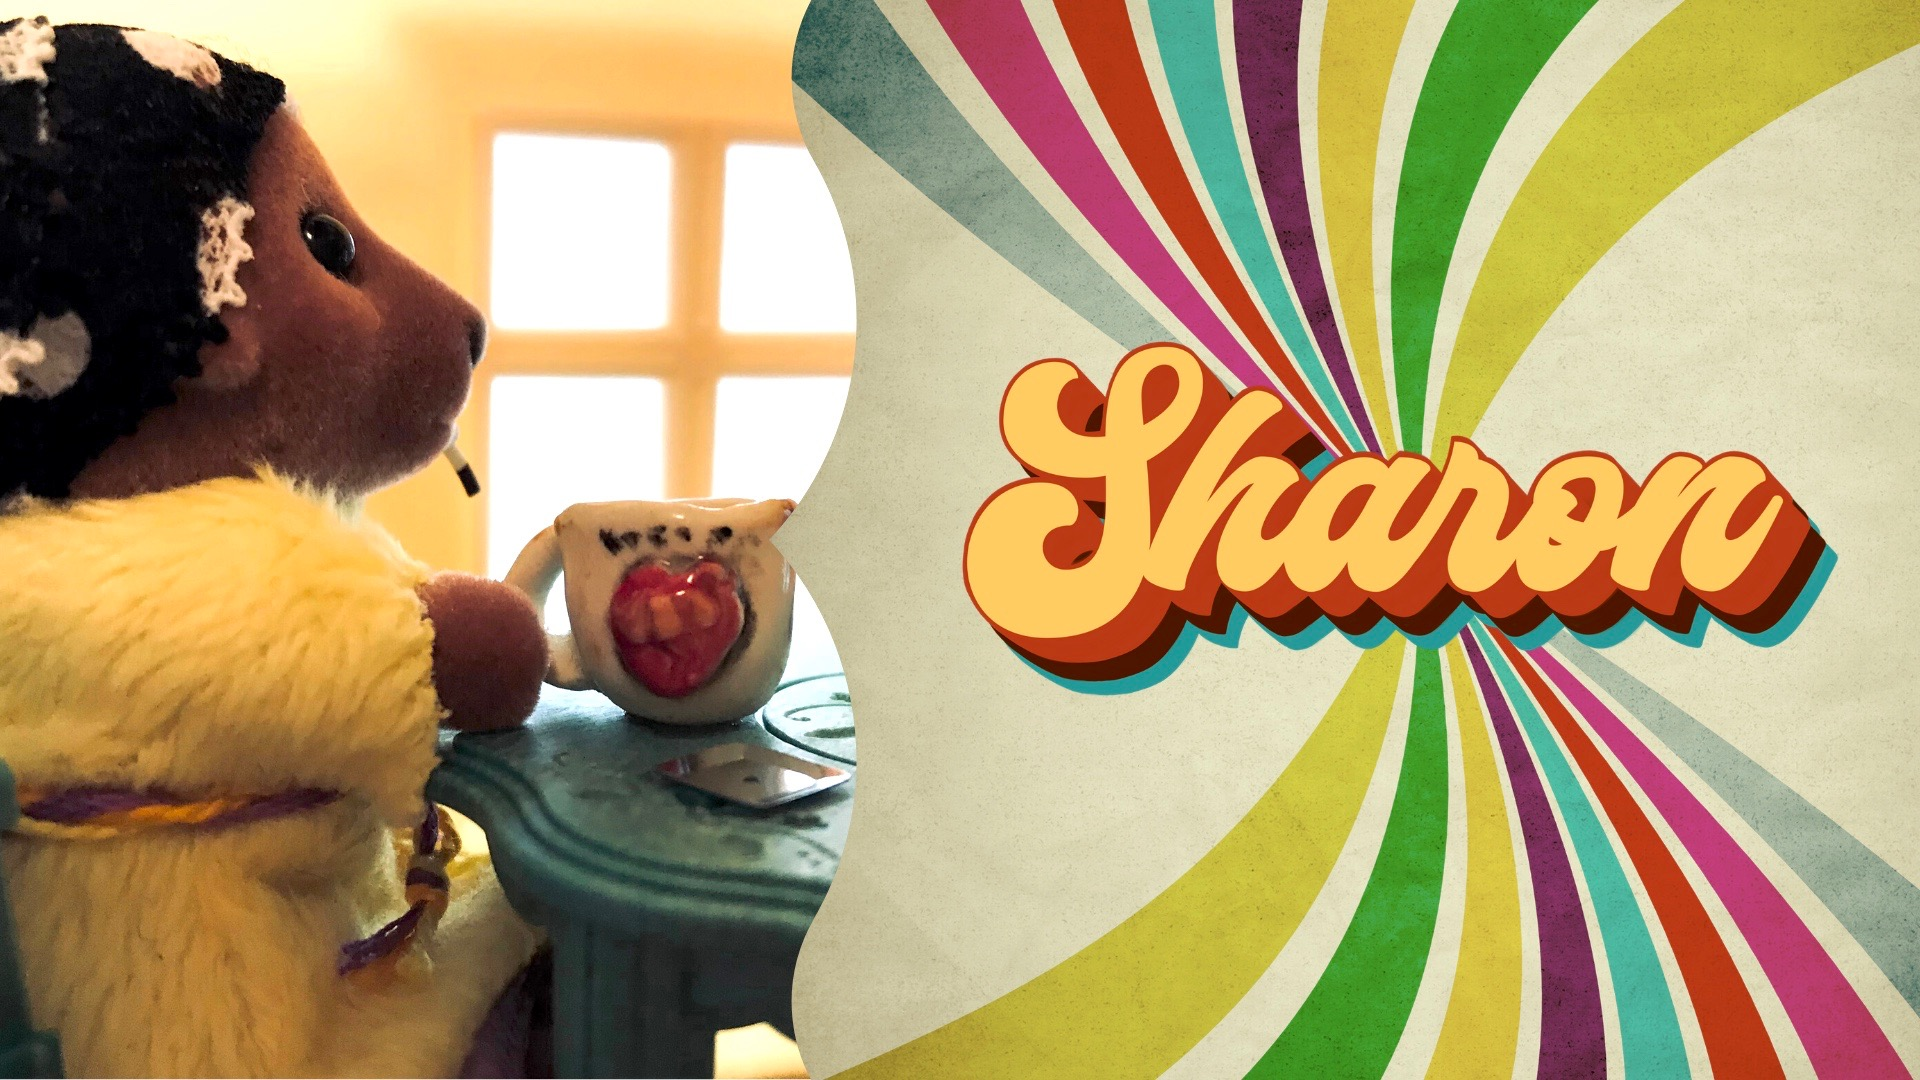 Sharon, star of the puppet docudrama 'Sharon,' is a working-class heroine to parents and their kids in Pittsburgh.